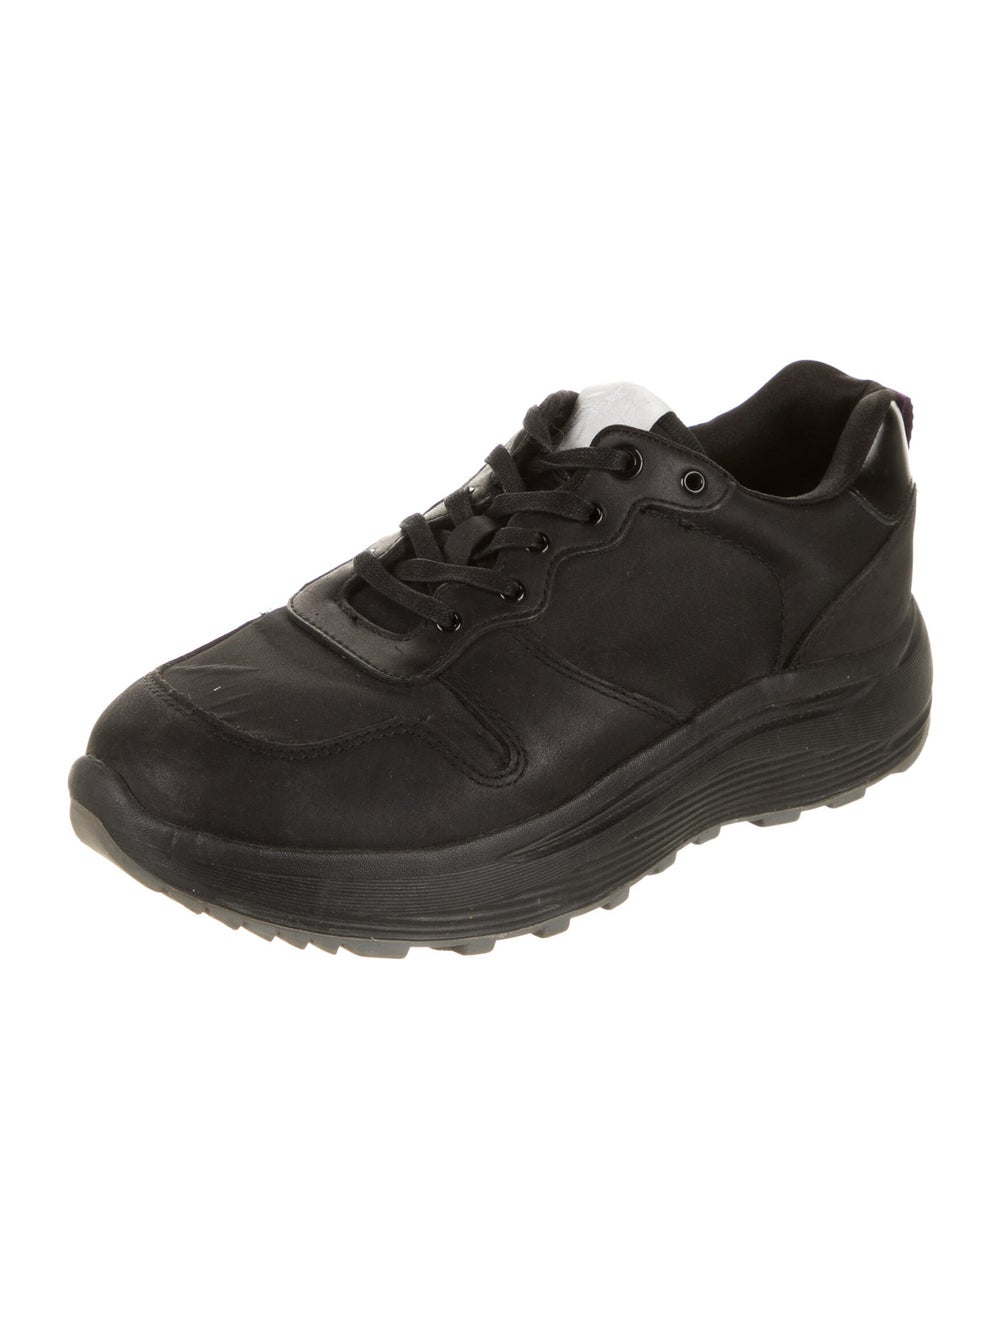 Eytys Leather Sneakers Black - image 2